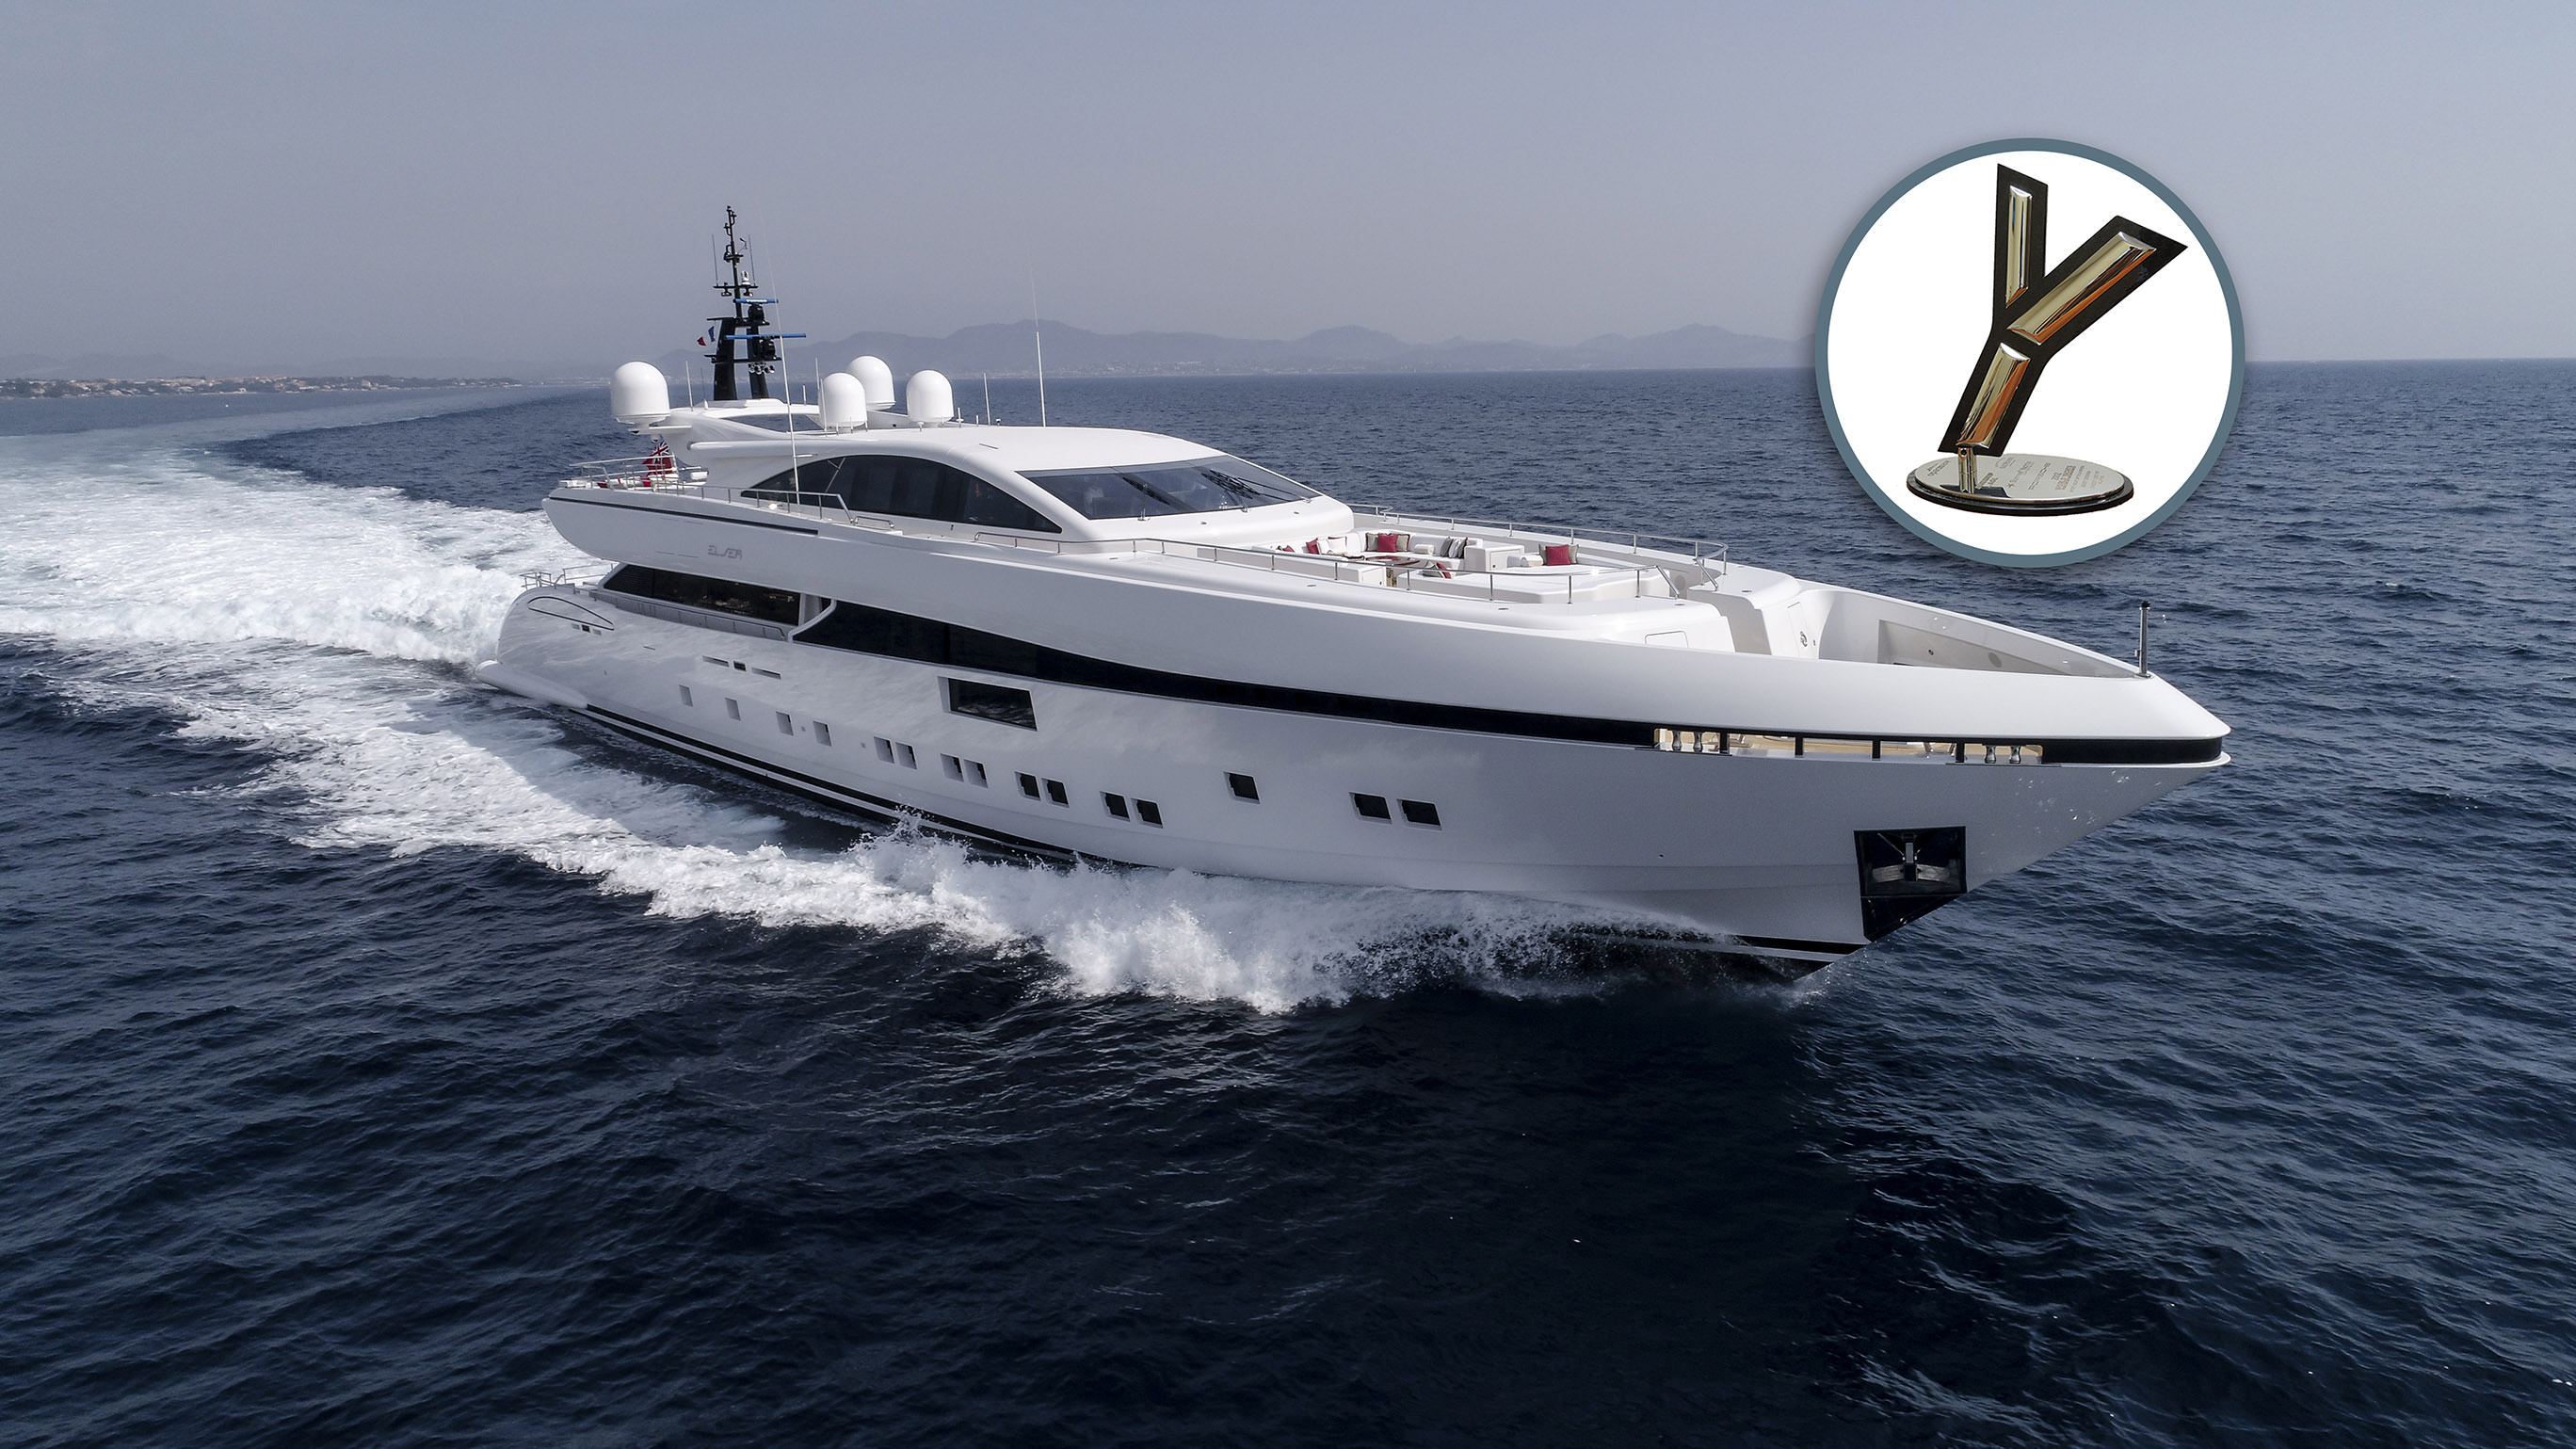 <div class='divtestFont'><a href='2017/09/20/ccn-vince-con-il-suo-50m-elsea-il-world-superyacht-trophy-per-la-categoria-best-revelation/'><div class='testFont'>Elsea winner of the World Superyacht Trophy 2017</div><div class='testFont1'>The 50M yacht was awarded for Revelation of the Year</div></a></div>